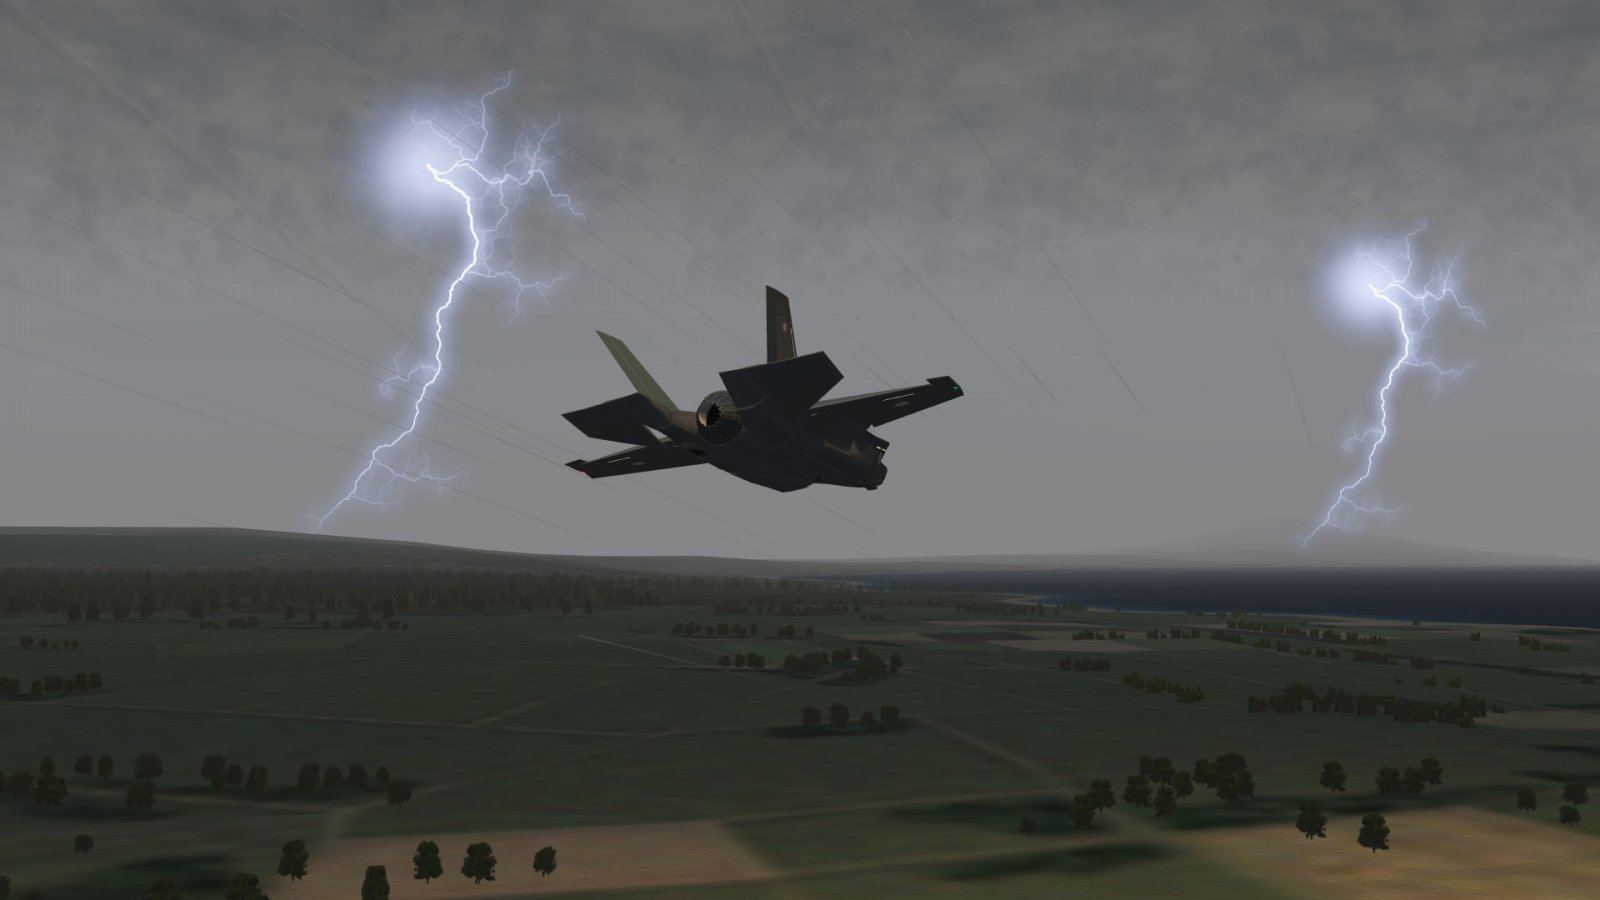 F-35A Lightning II Down Low While Lightning of a Different Kind Also Stings